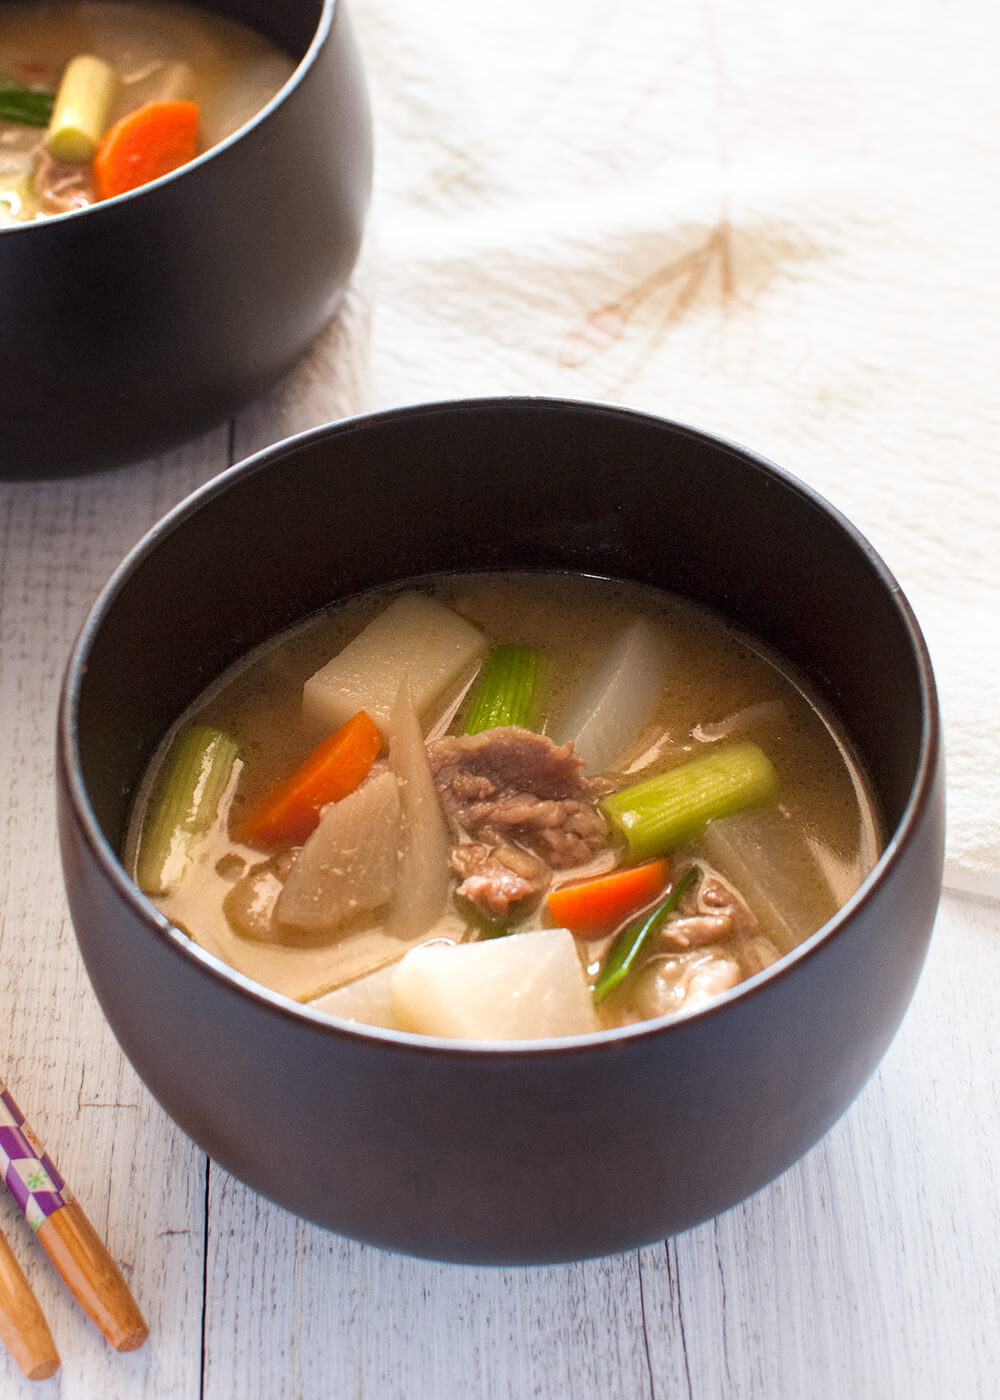 Tonjiru (豚汁) is a hearty miso soup with pork slices and vegetables ...